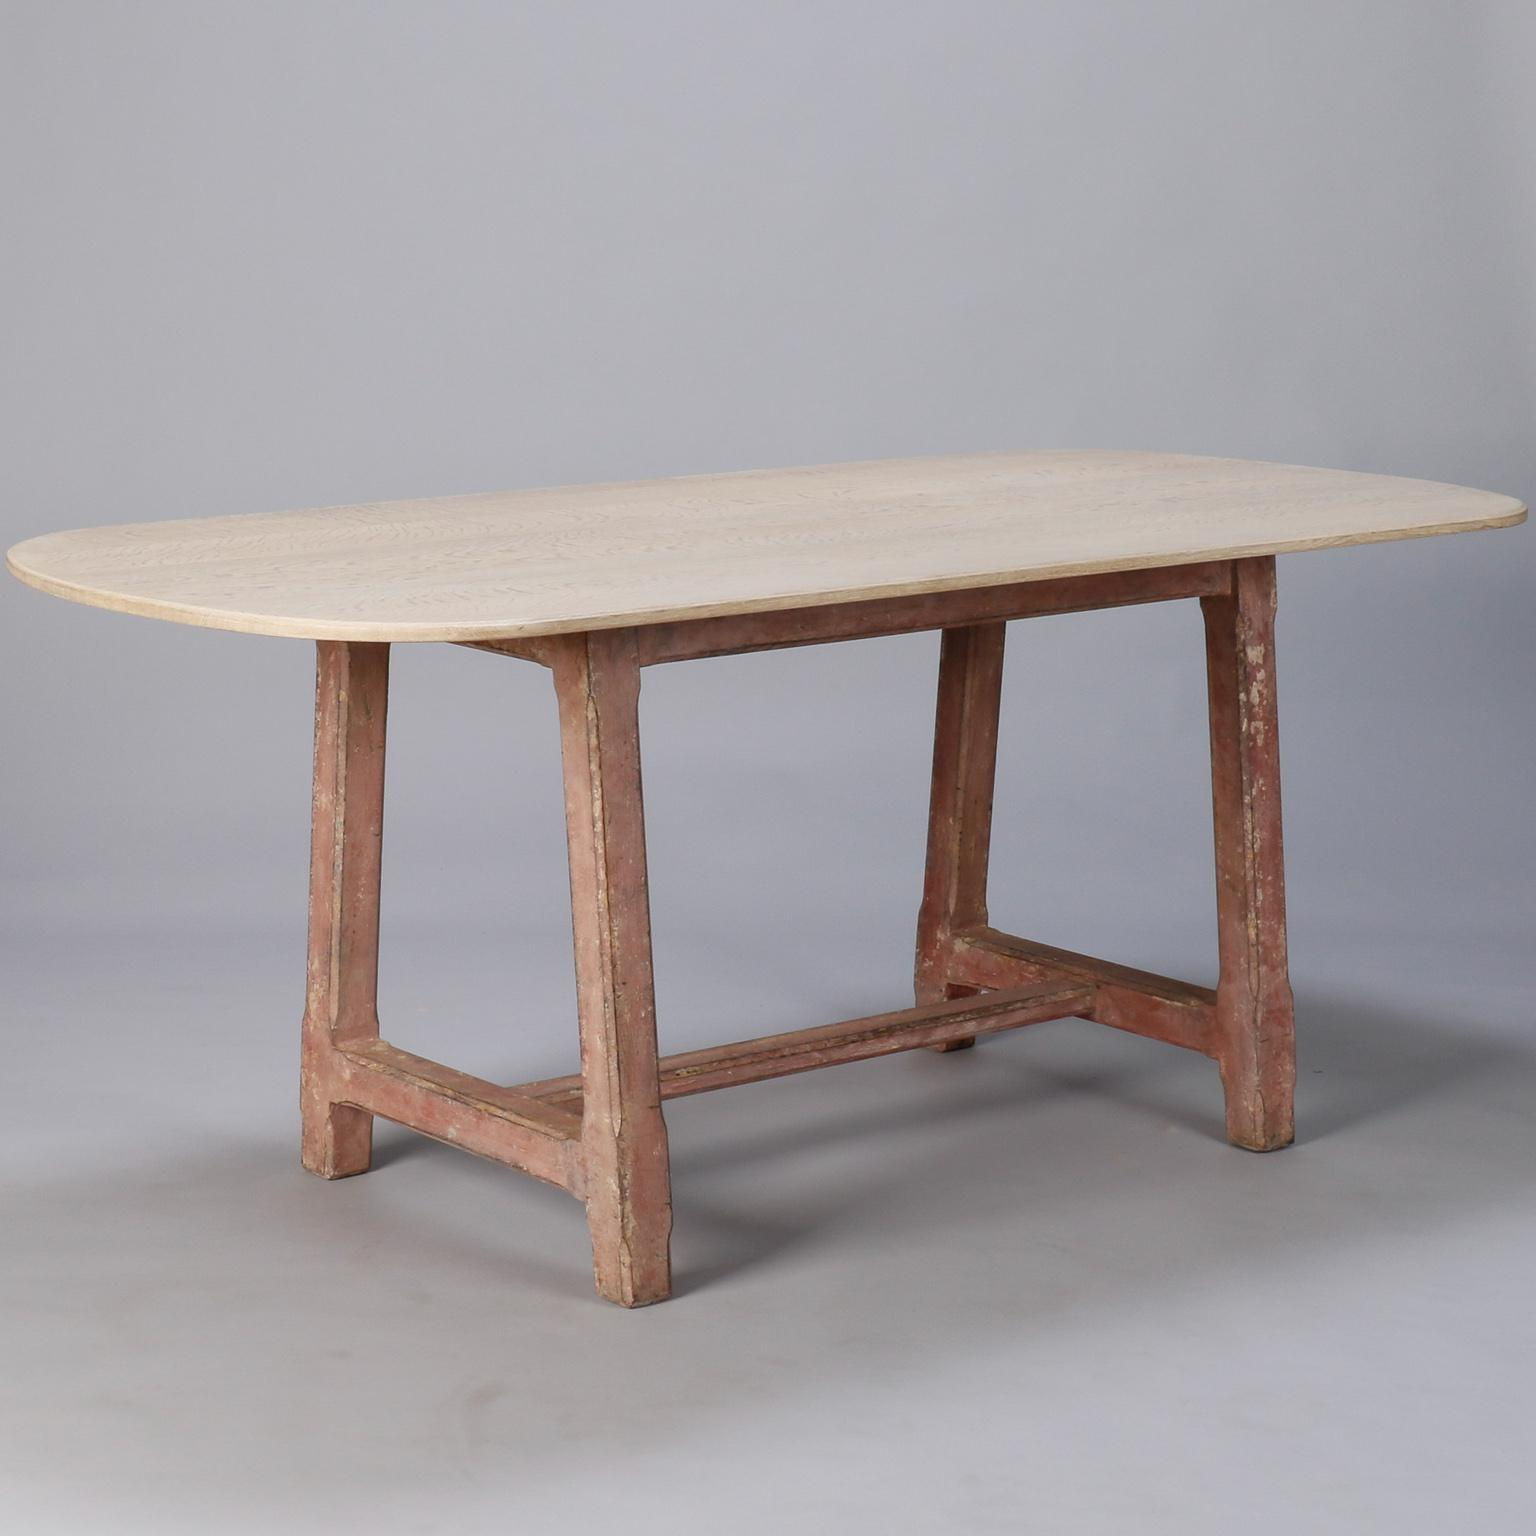 Early 20th Century French Table Has A Red Painted Base And Contrasting Bleached  Wood Oval Top